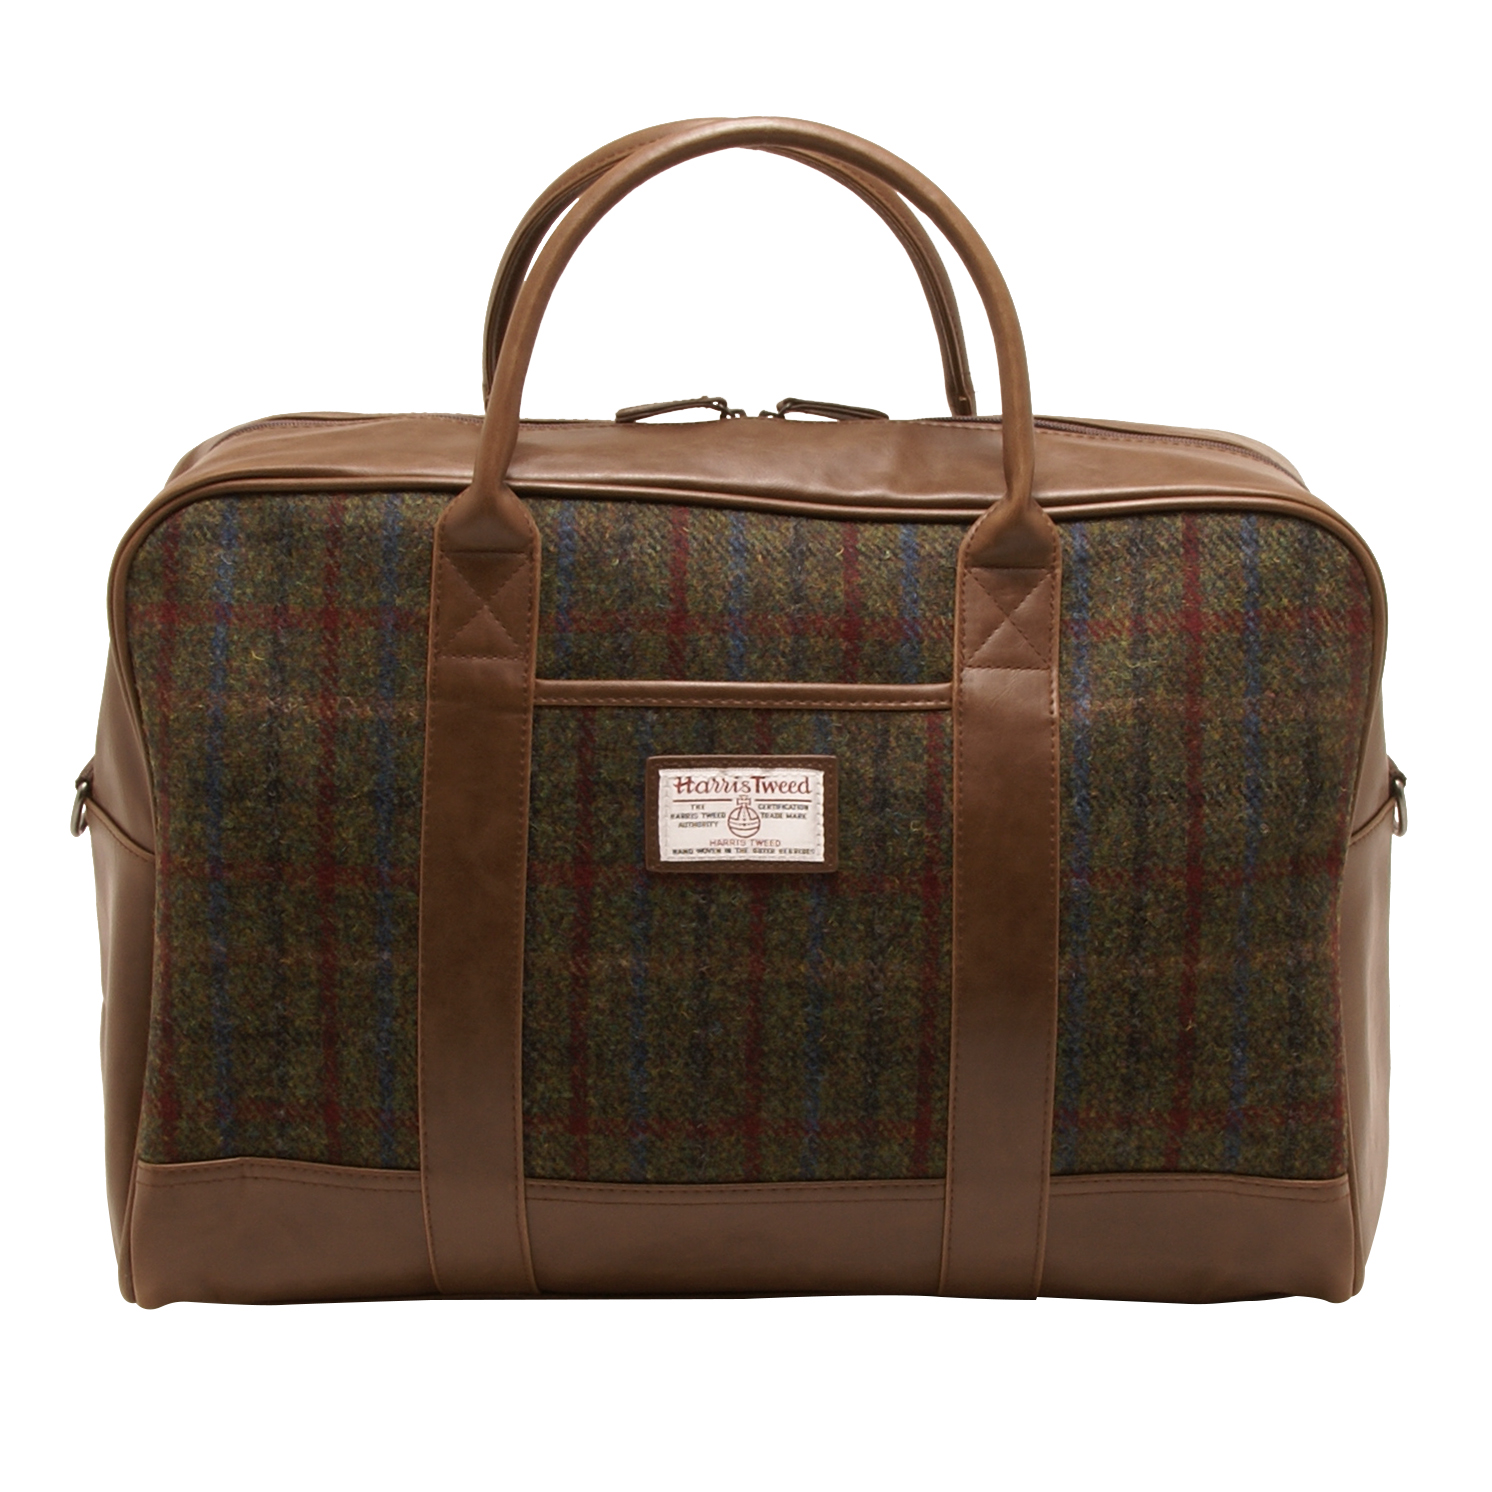 The British Bag Company – Green & Red Harris Tweed Breanais Travel Bag/Holdall